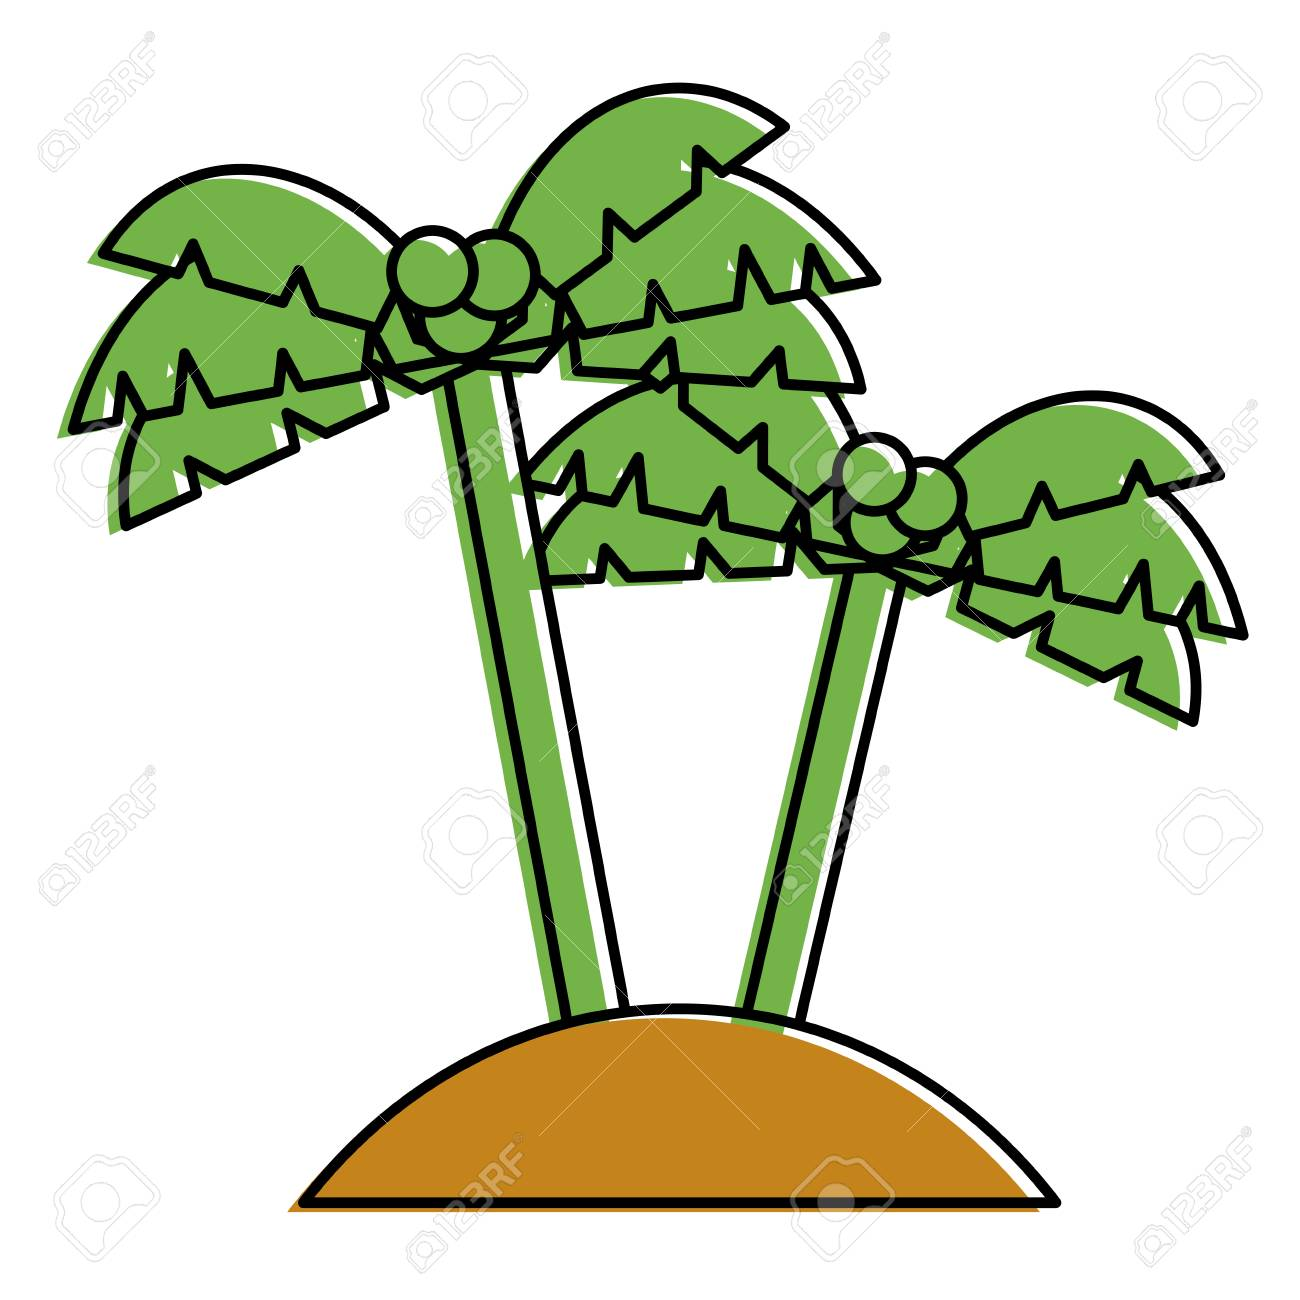 Two Palms Tree Coconut Beach Sand Vector Illustration Royalty Free ...